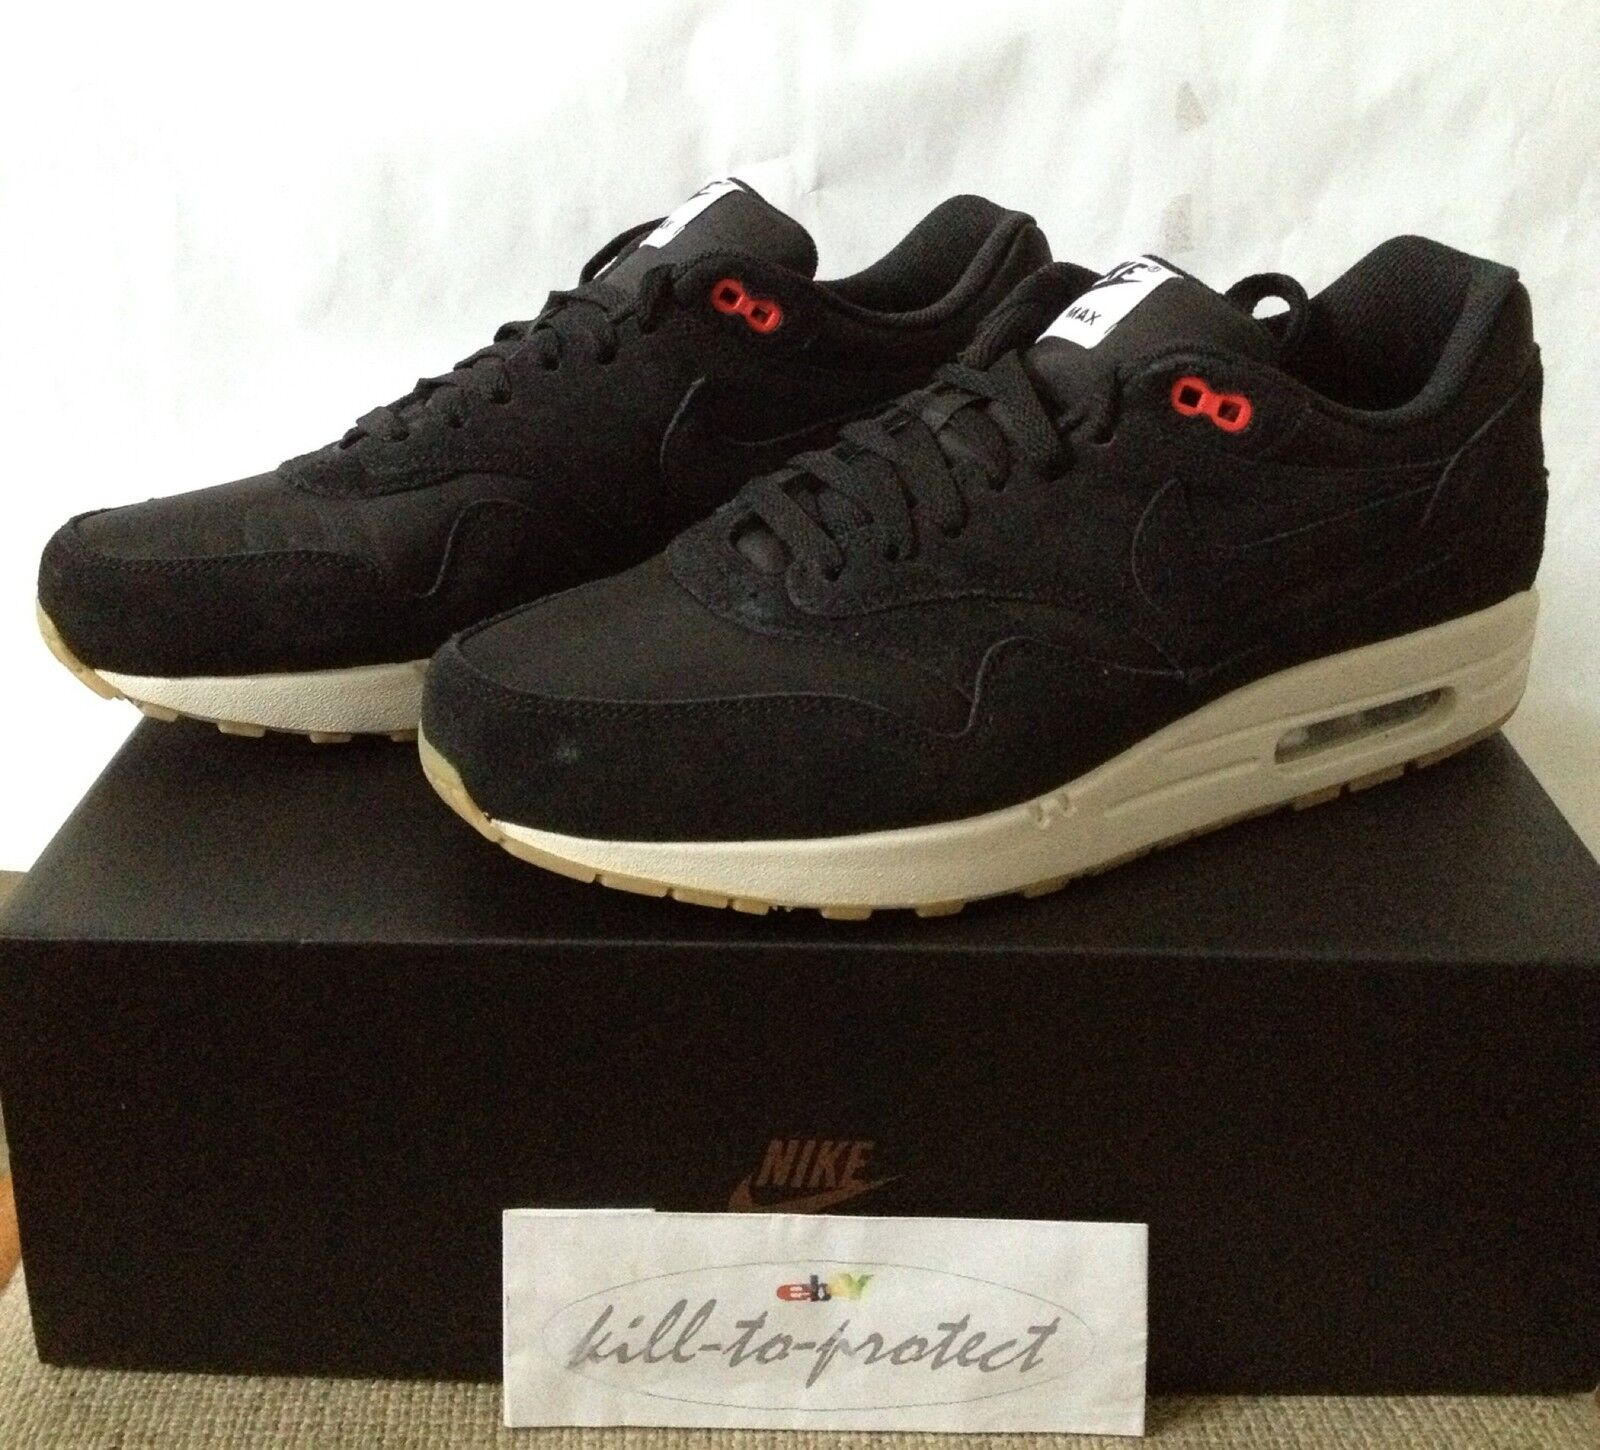 NIKE AIR MAX 1 ONE ENGLAND US11 UK10 HYPERSTRIKE 999888-001 noir 2018 Yeezy